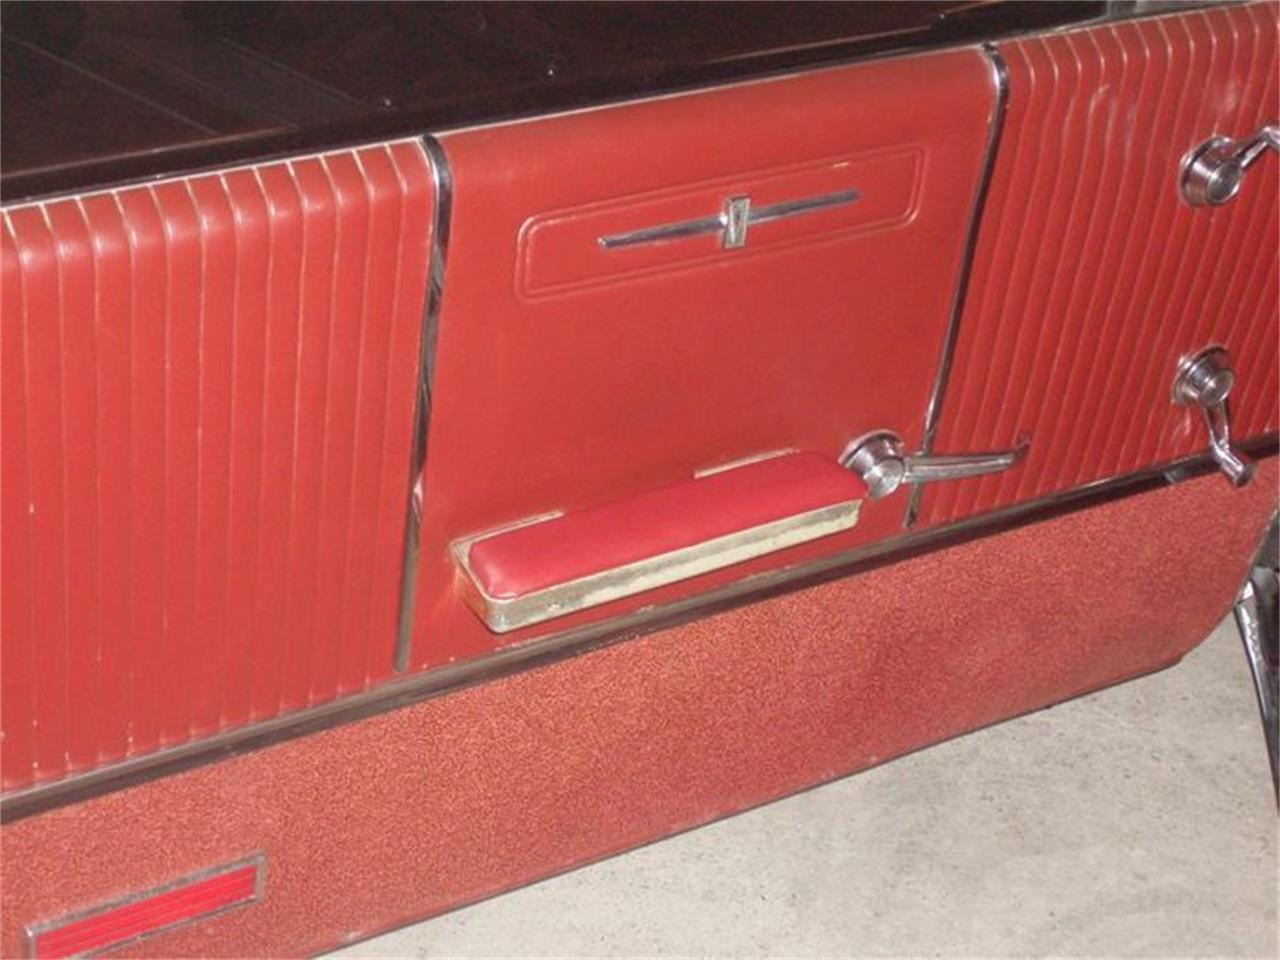 Large Picture of '64 Parisienne - $18,000.00 Offered by Classic Car Deals - NW2Y